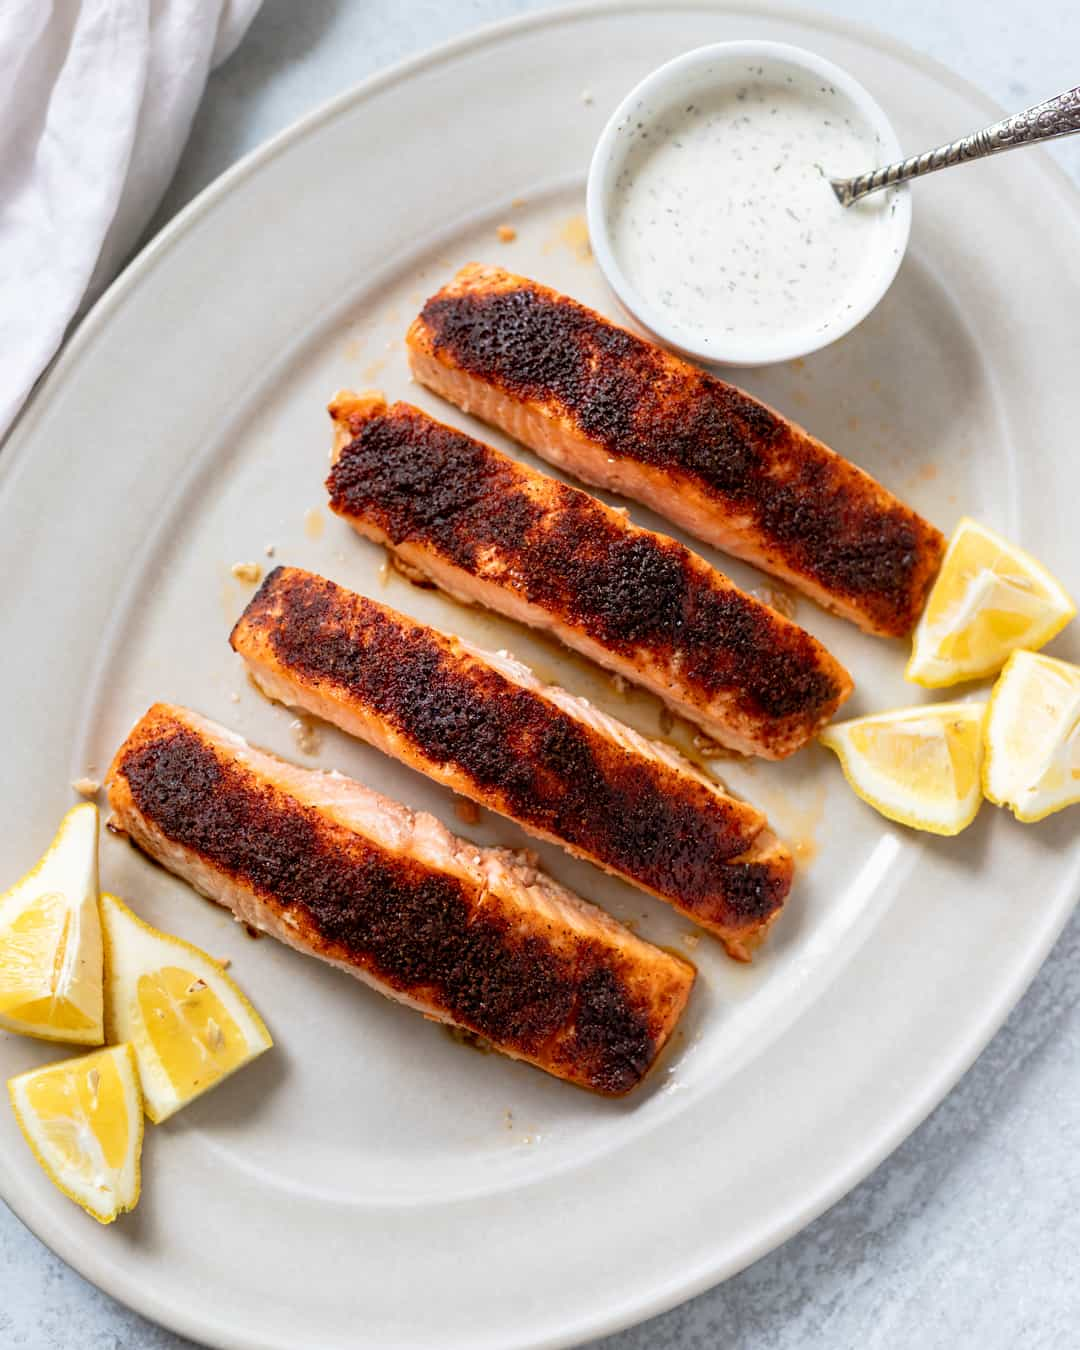 Blackened Salmon with Dad's Special Sauce